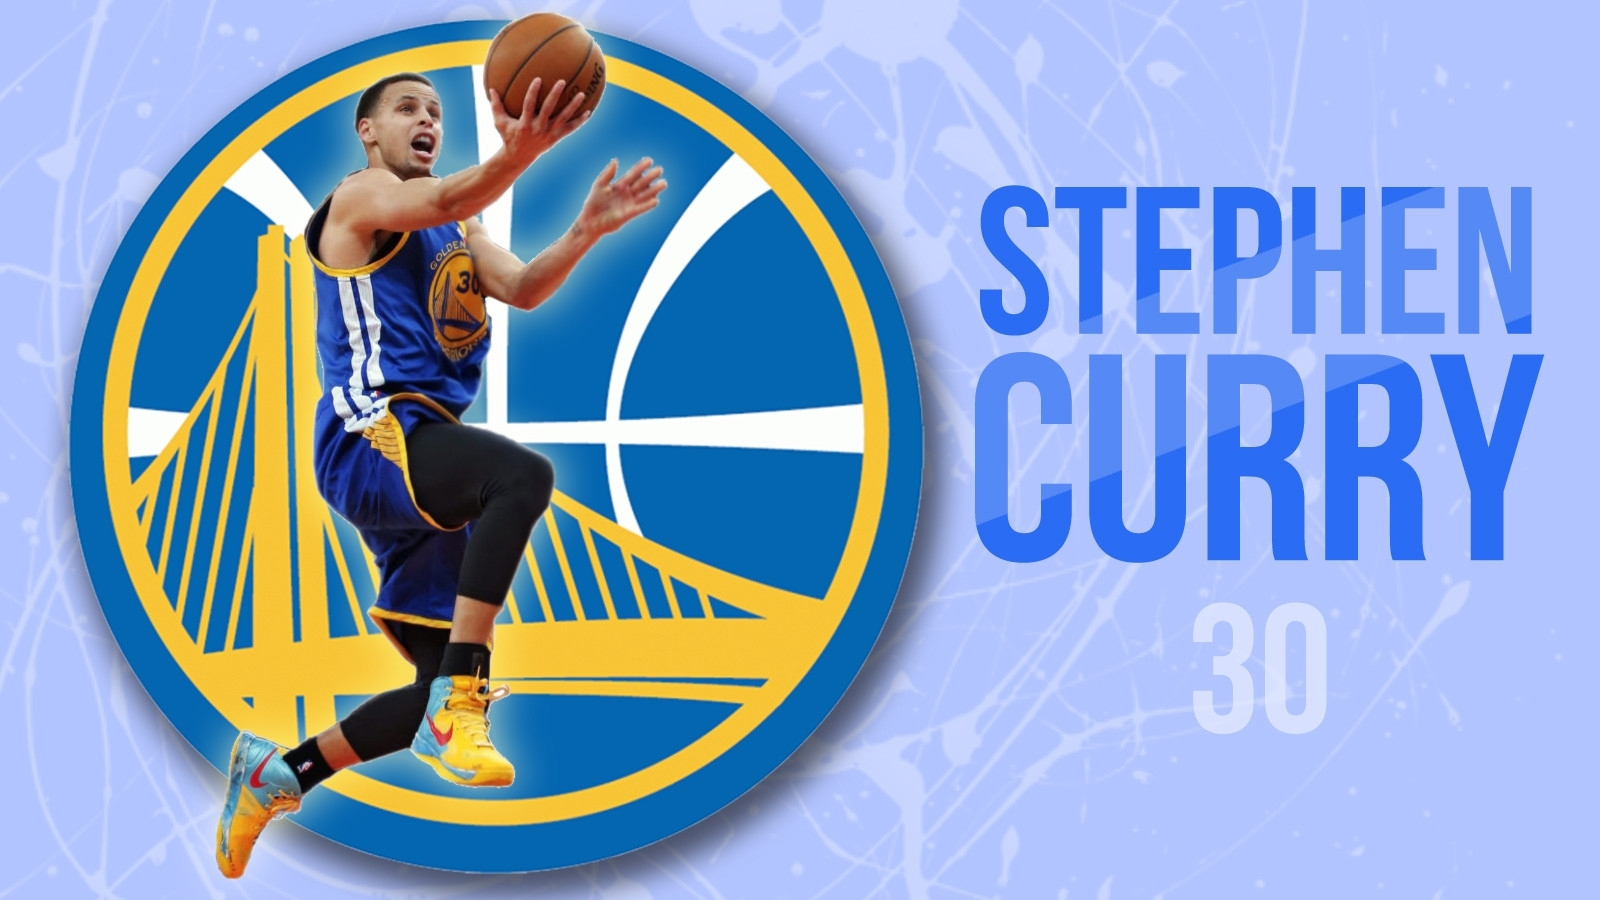 stephen curry shooting wallpapers wide ~ desktop wallpaper box